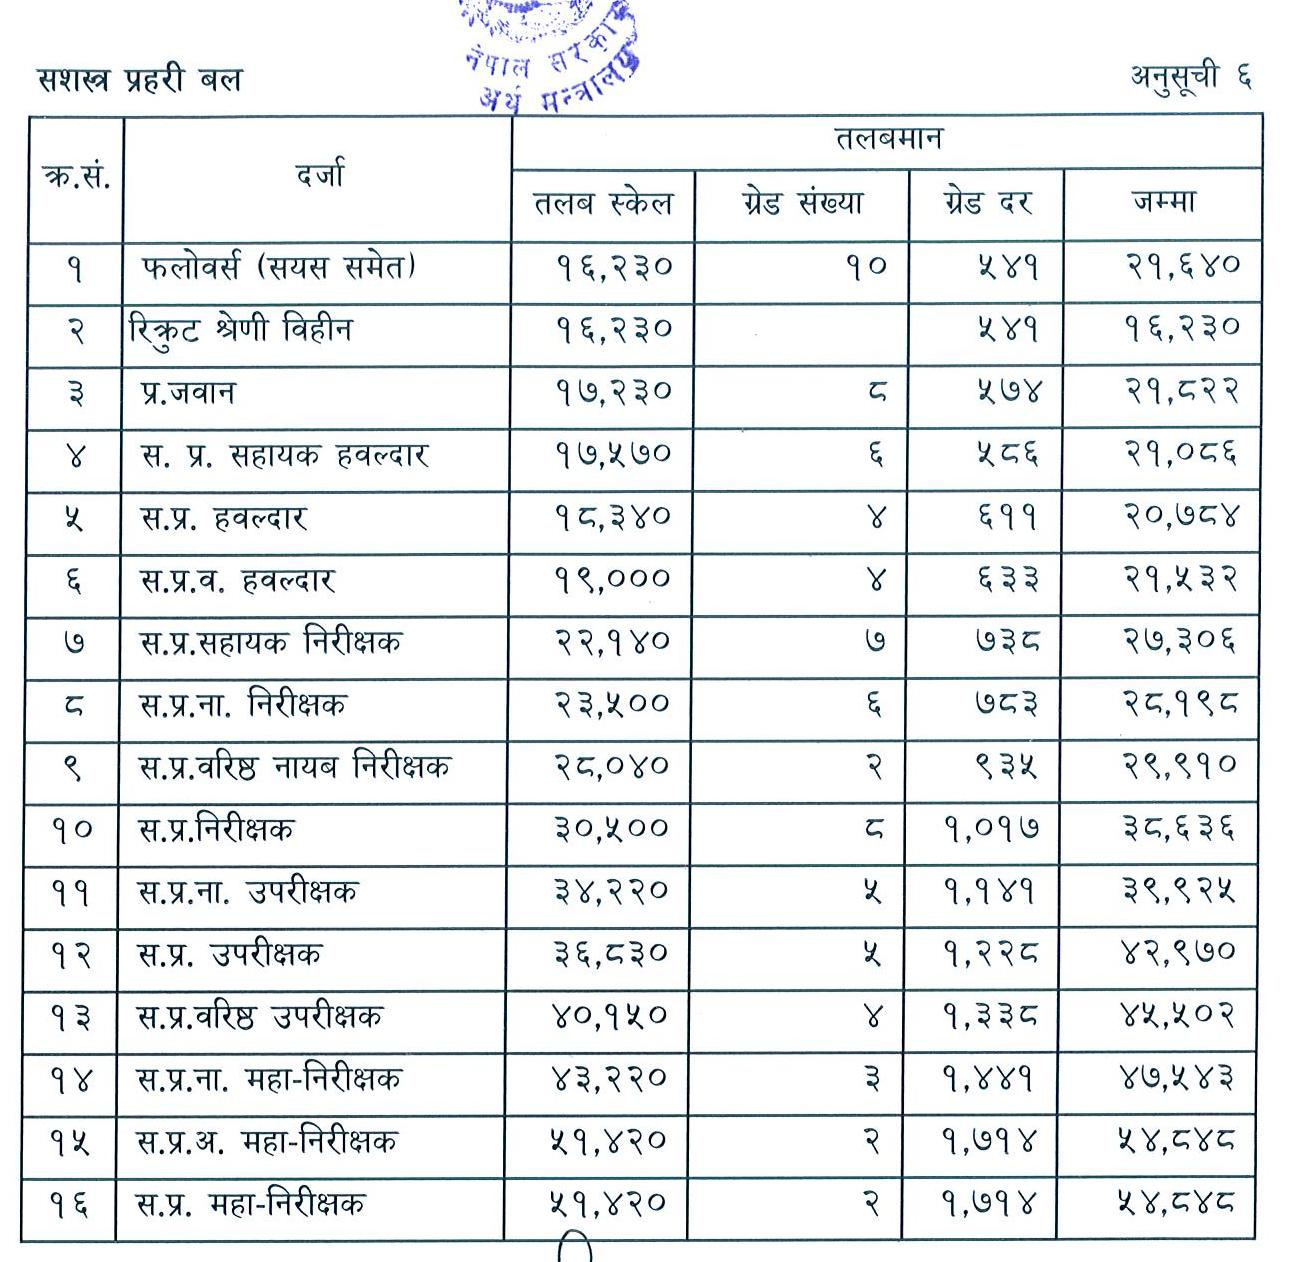 Army Rankings and Pay Scale